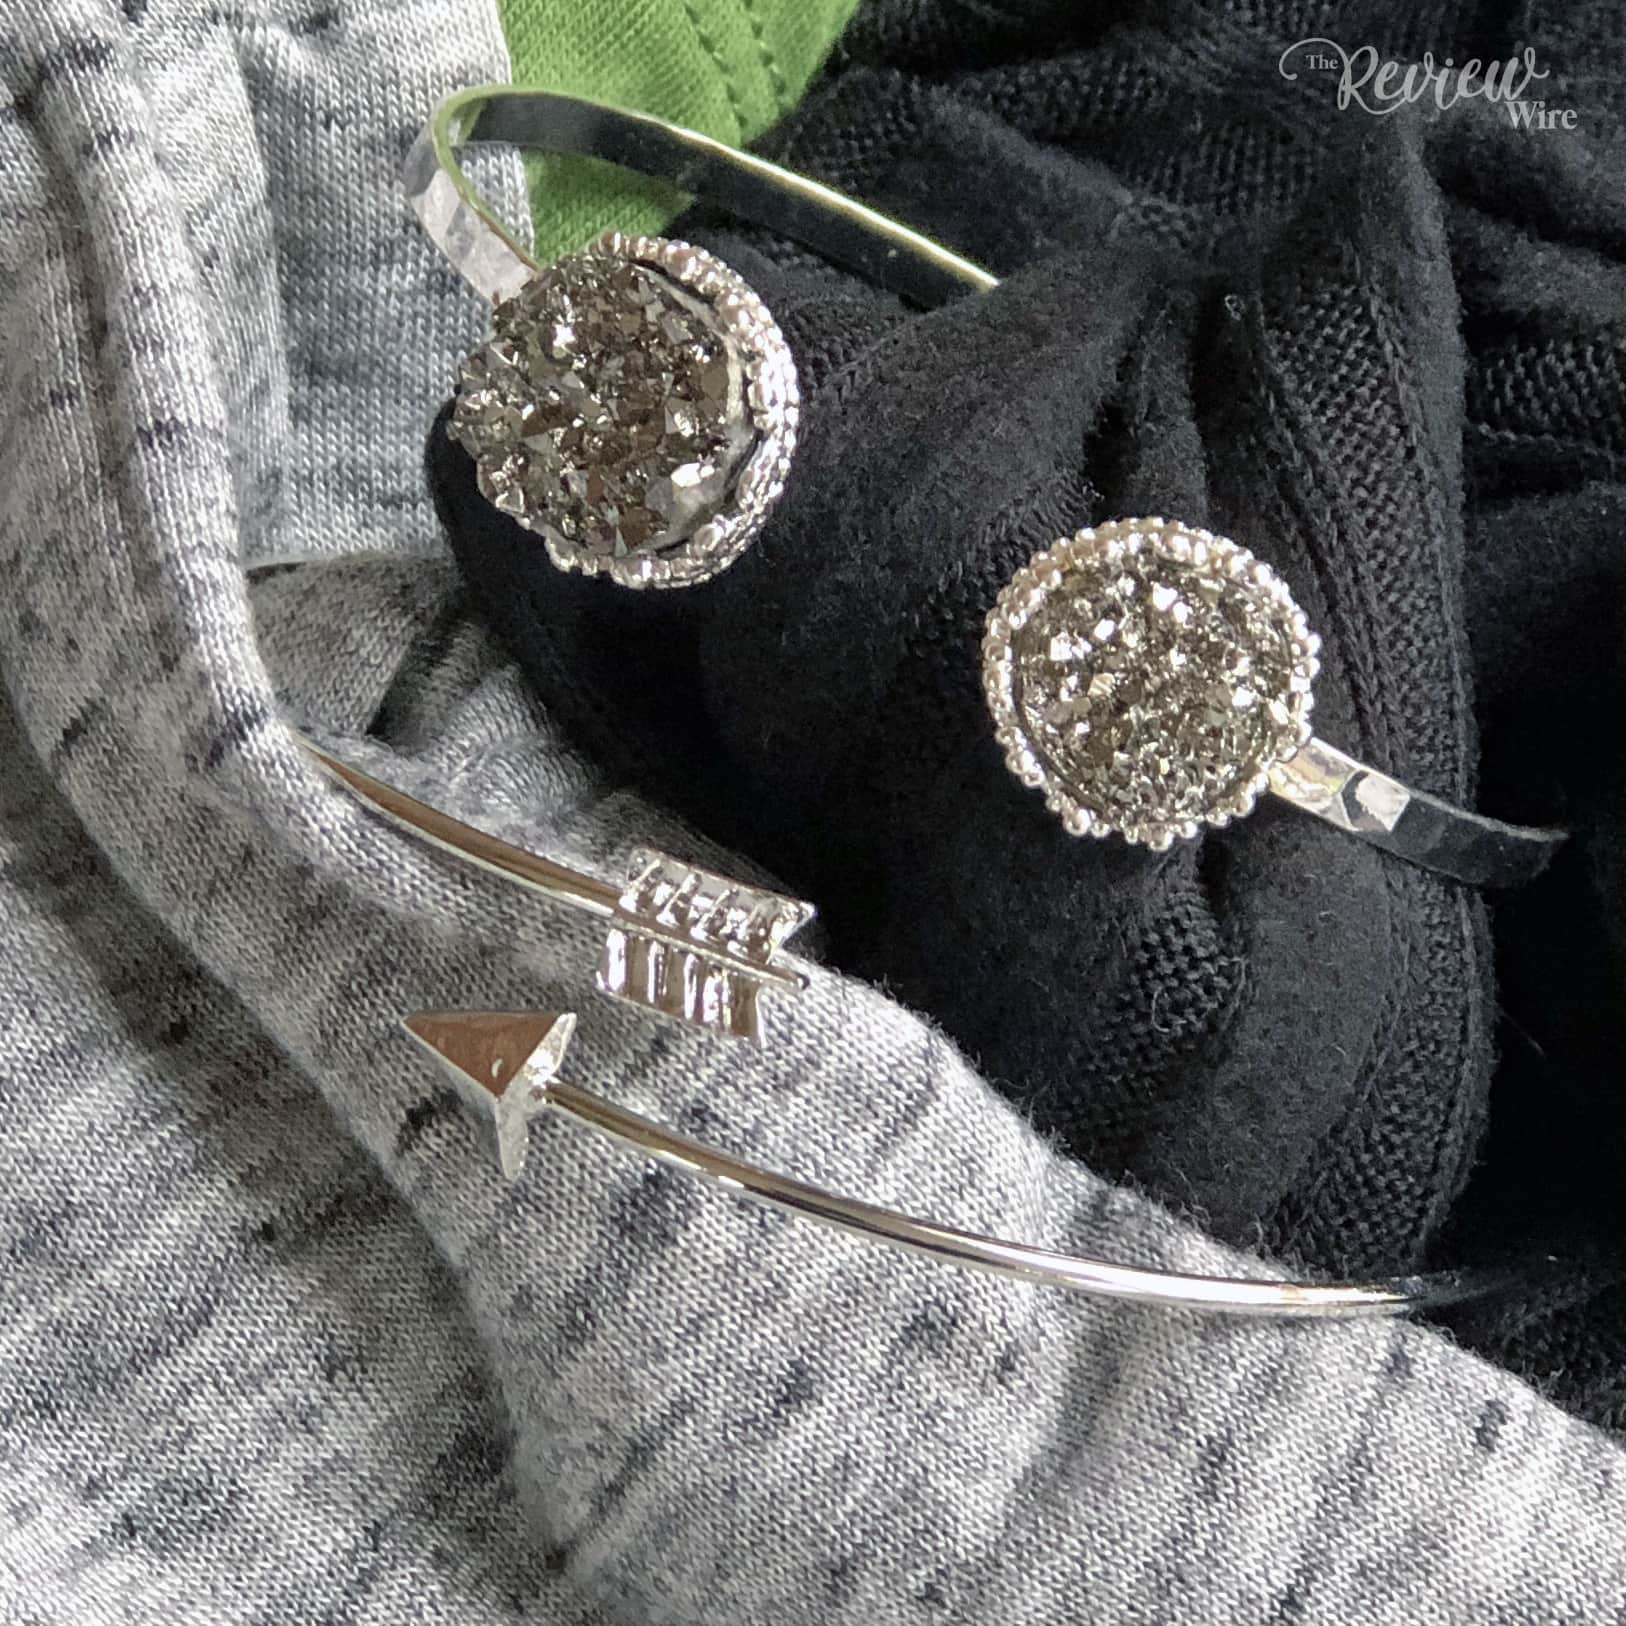 The Review Wire: February 2019 Nadine West Jewelry